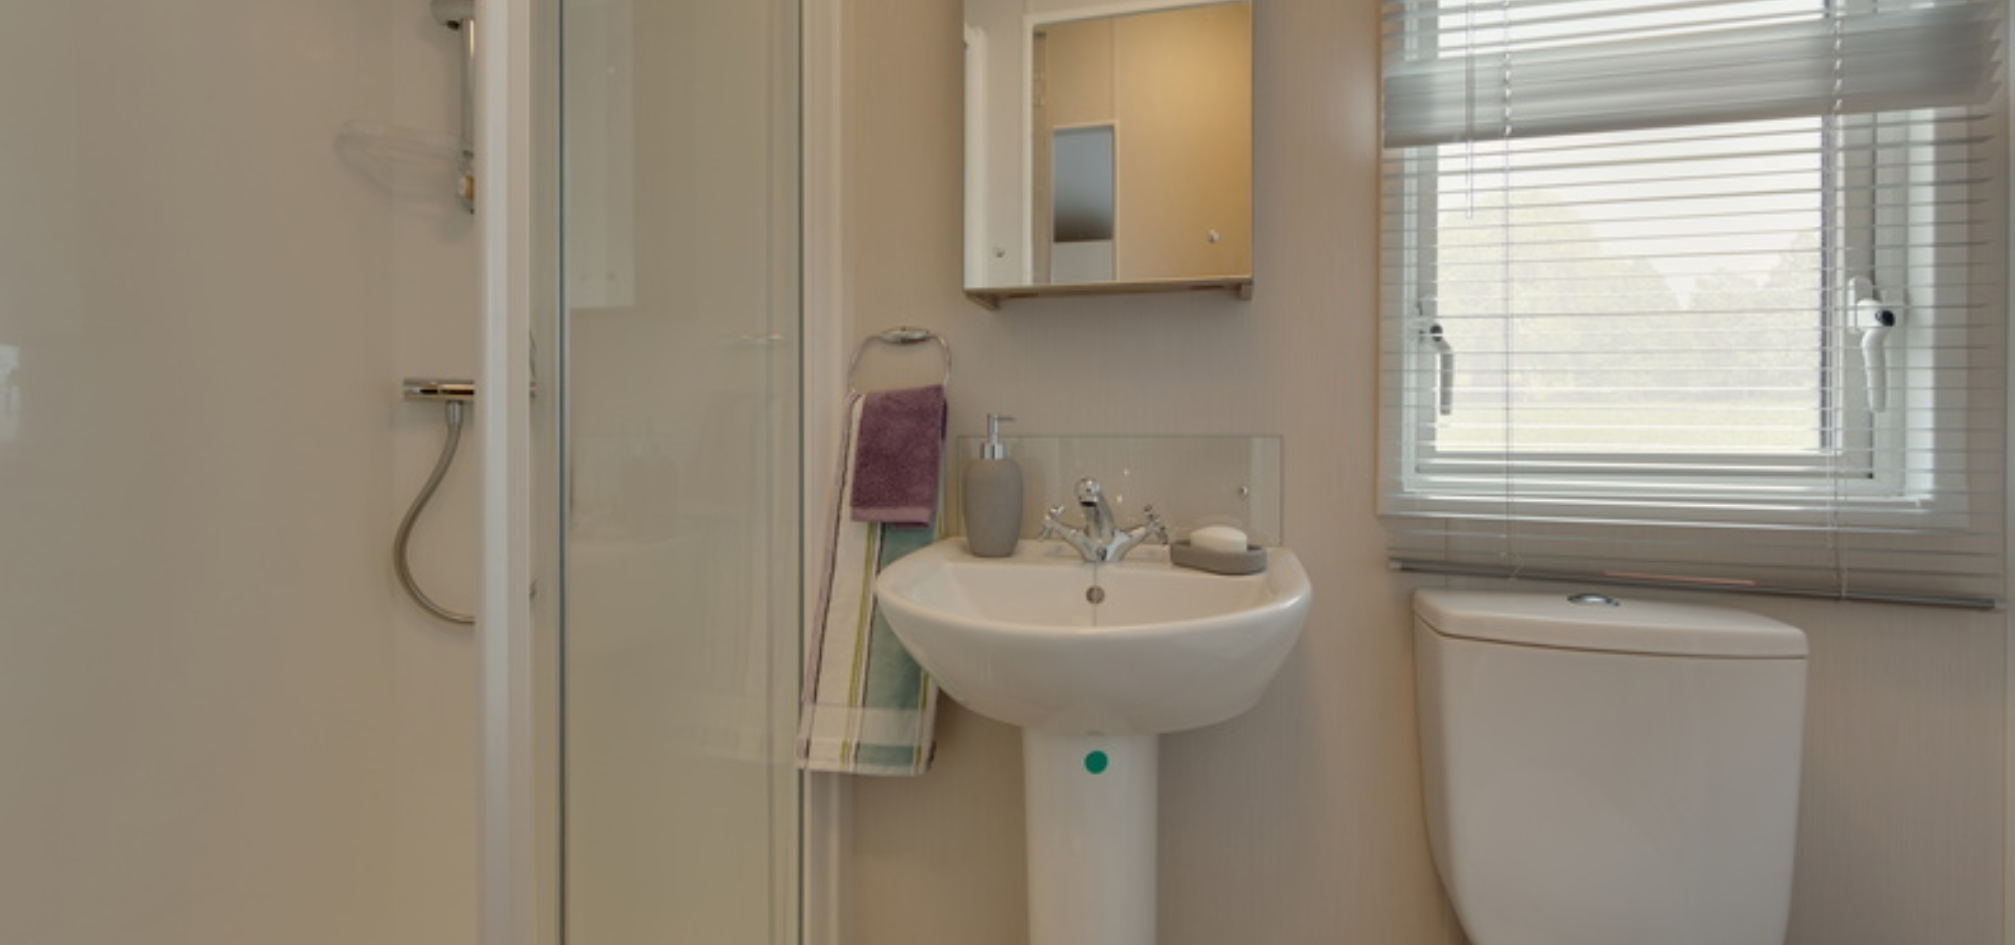 bathroom sink and toliet with a shower on the left